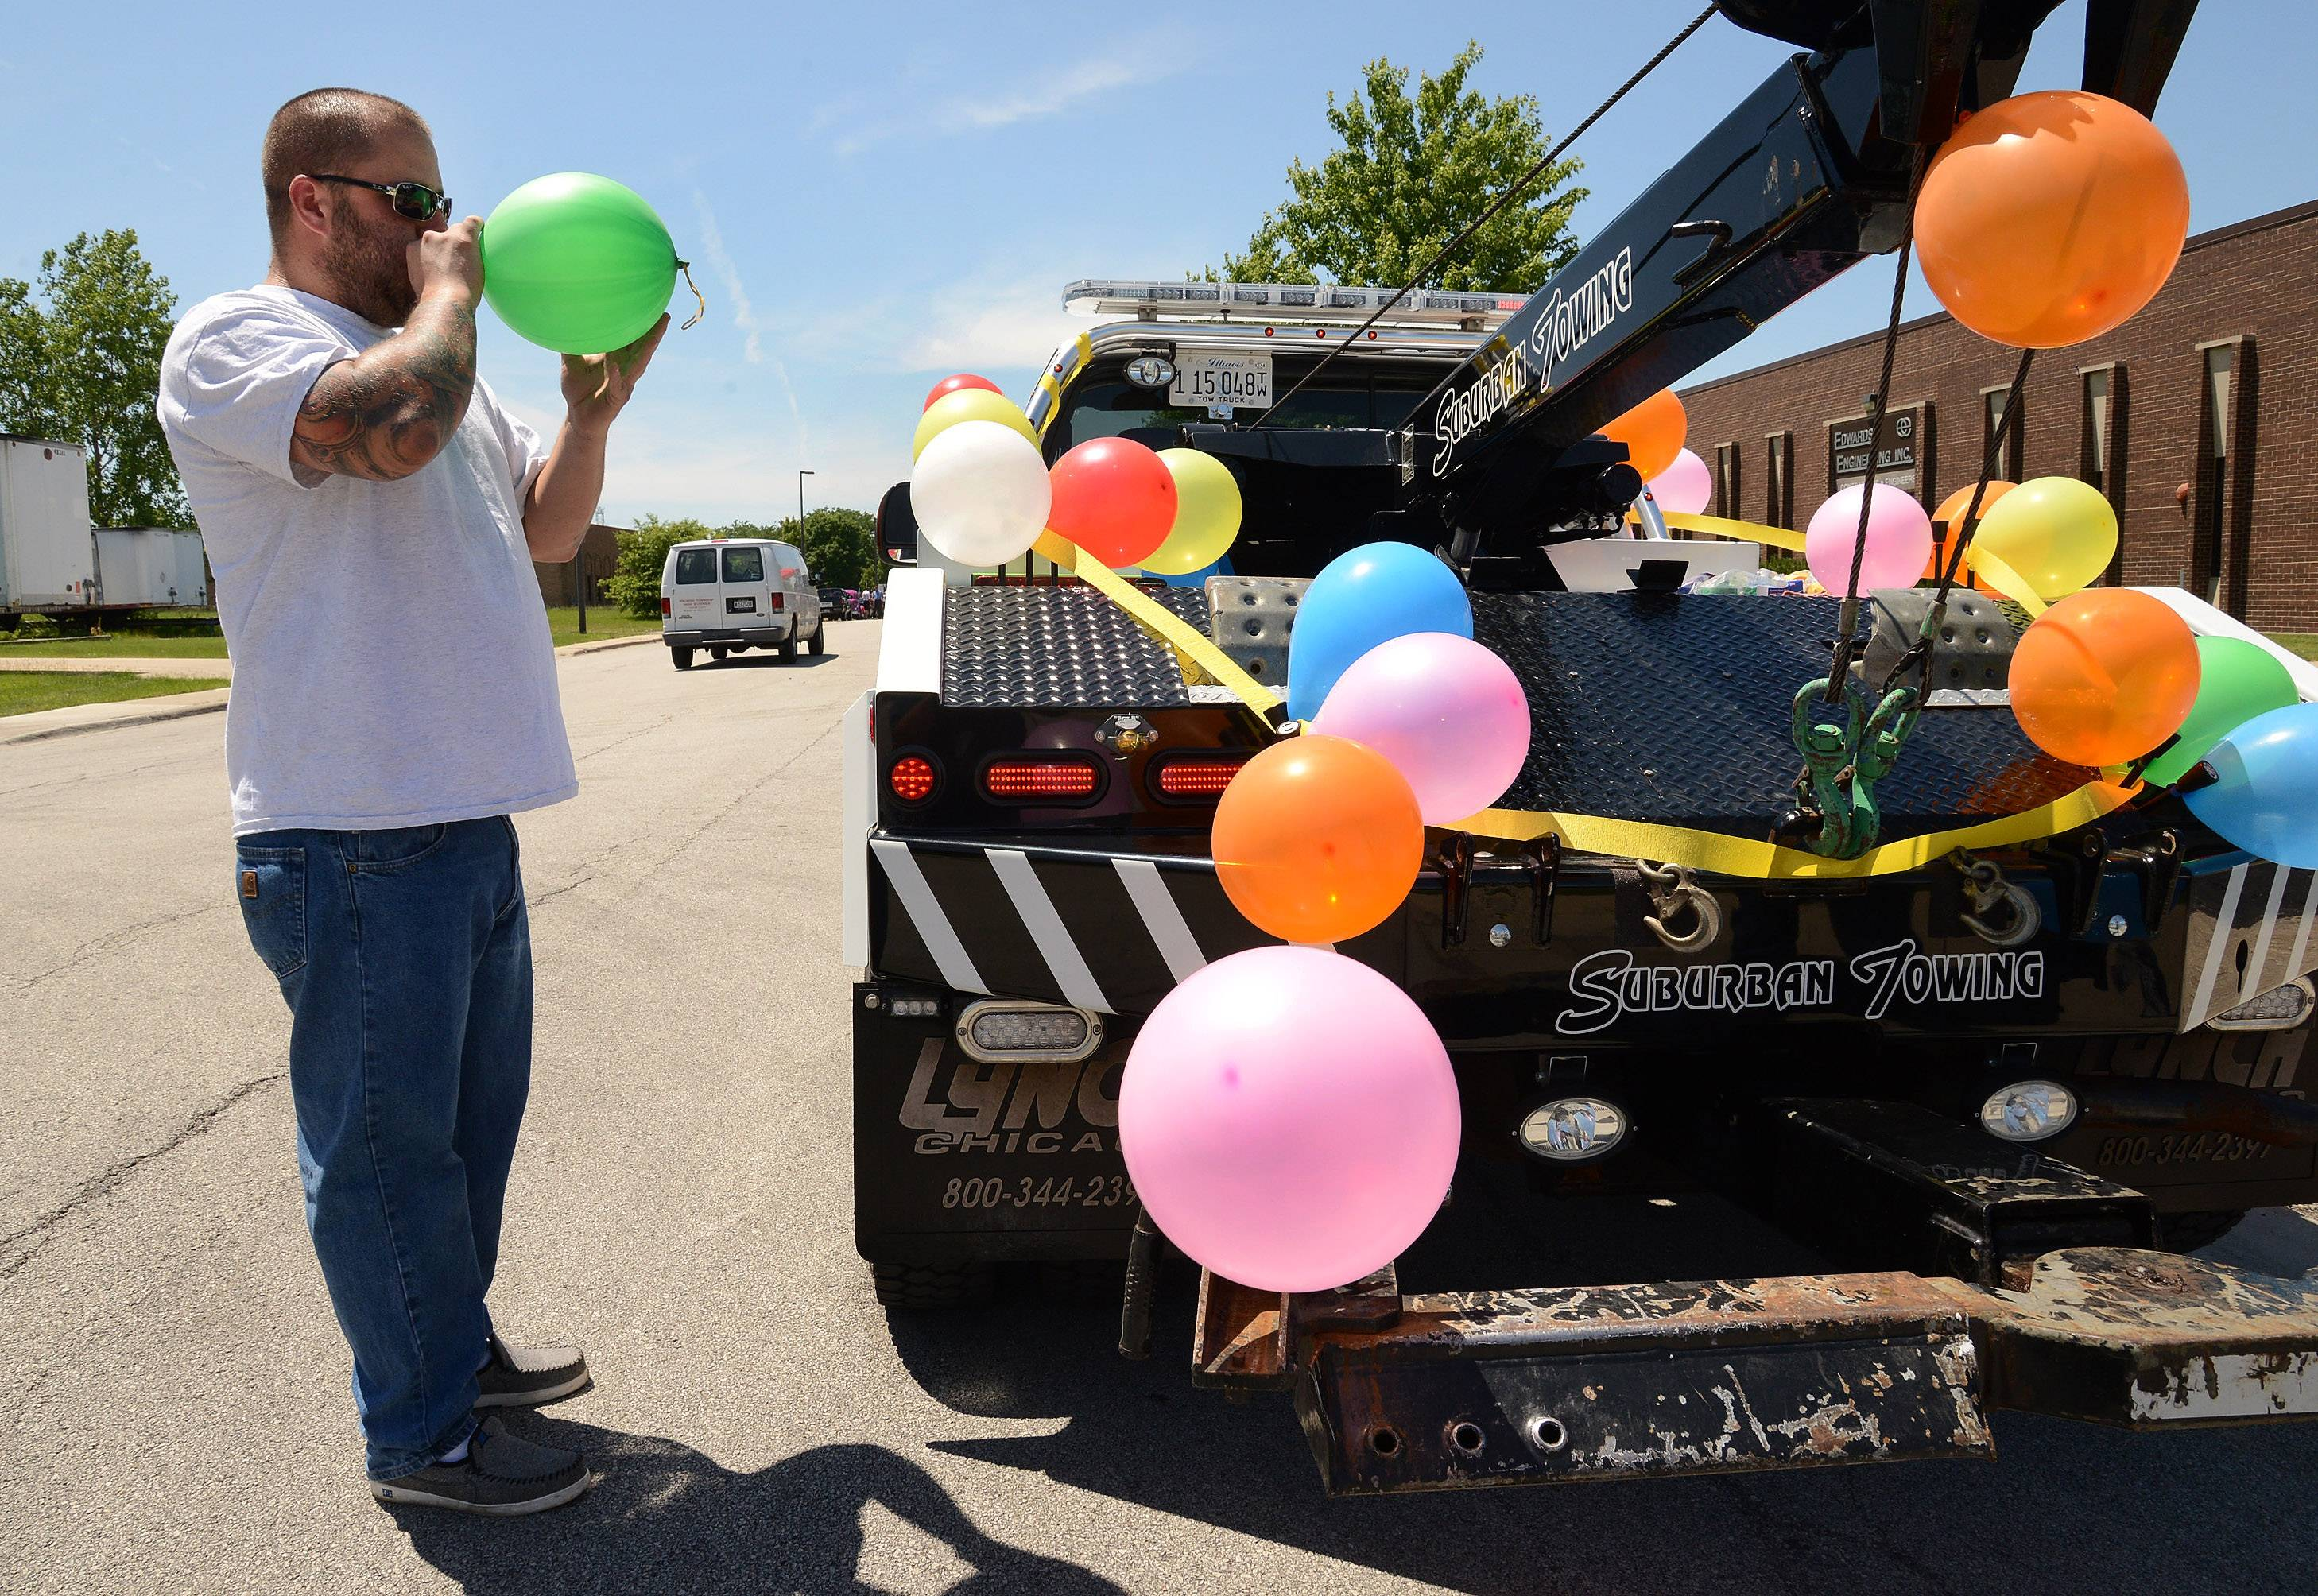 Chris Little of Suburban Towing and Recovery was blowing up balloons to decorate his truck Saturday afternoon for the parade in Elk Grove Village.